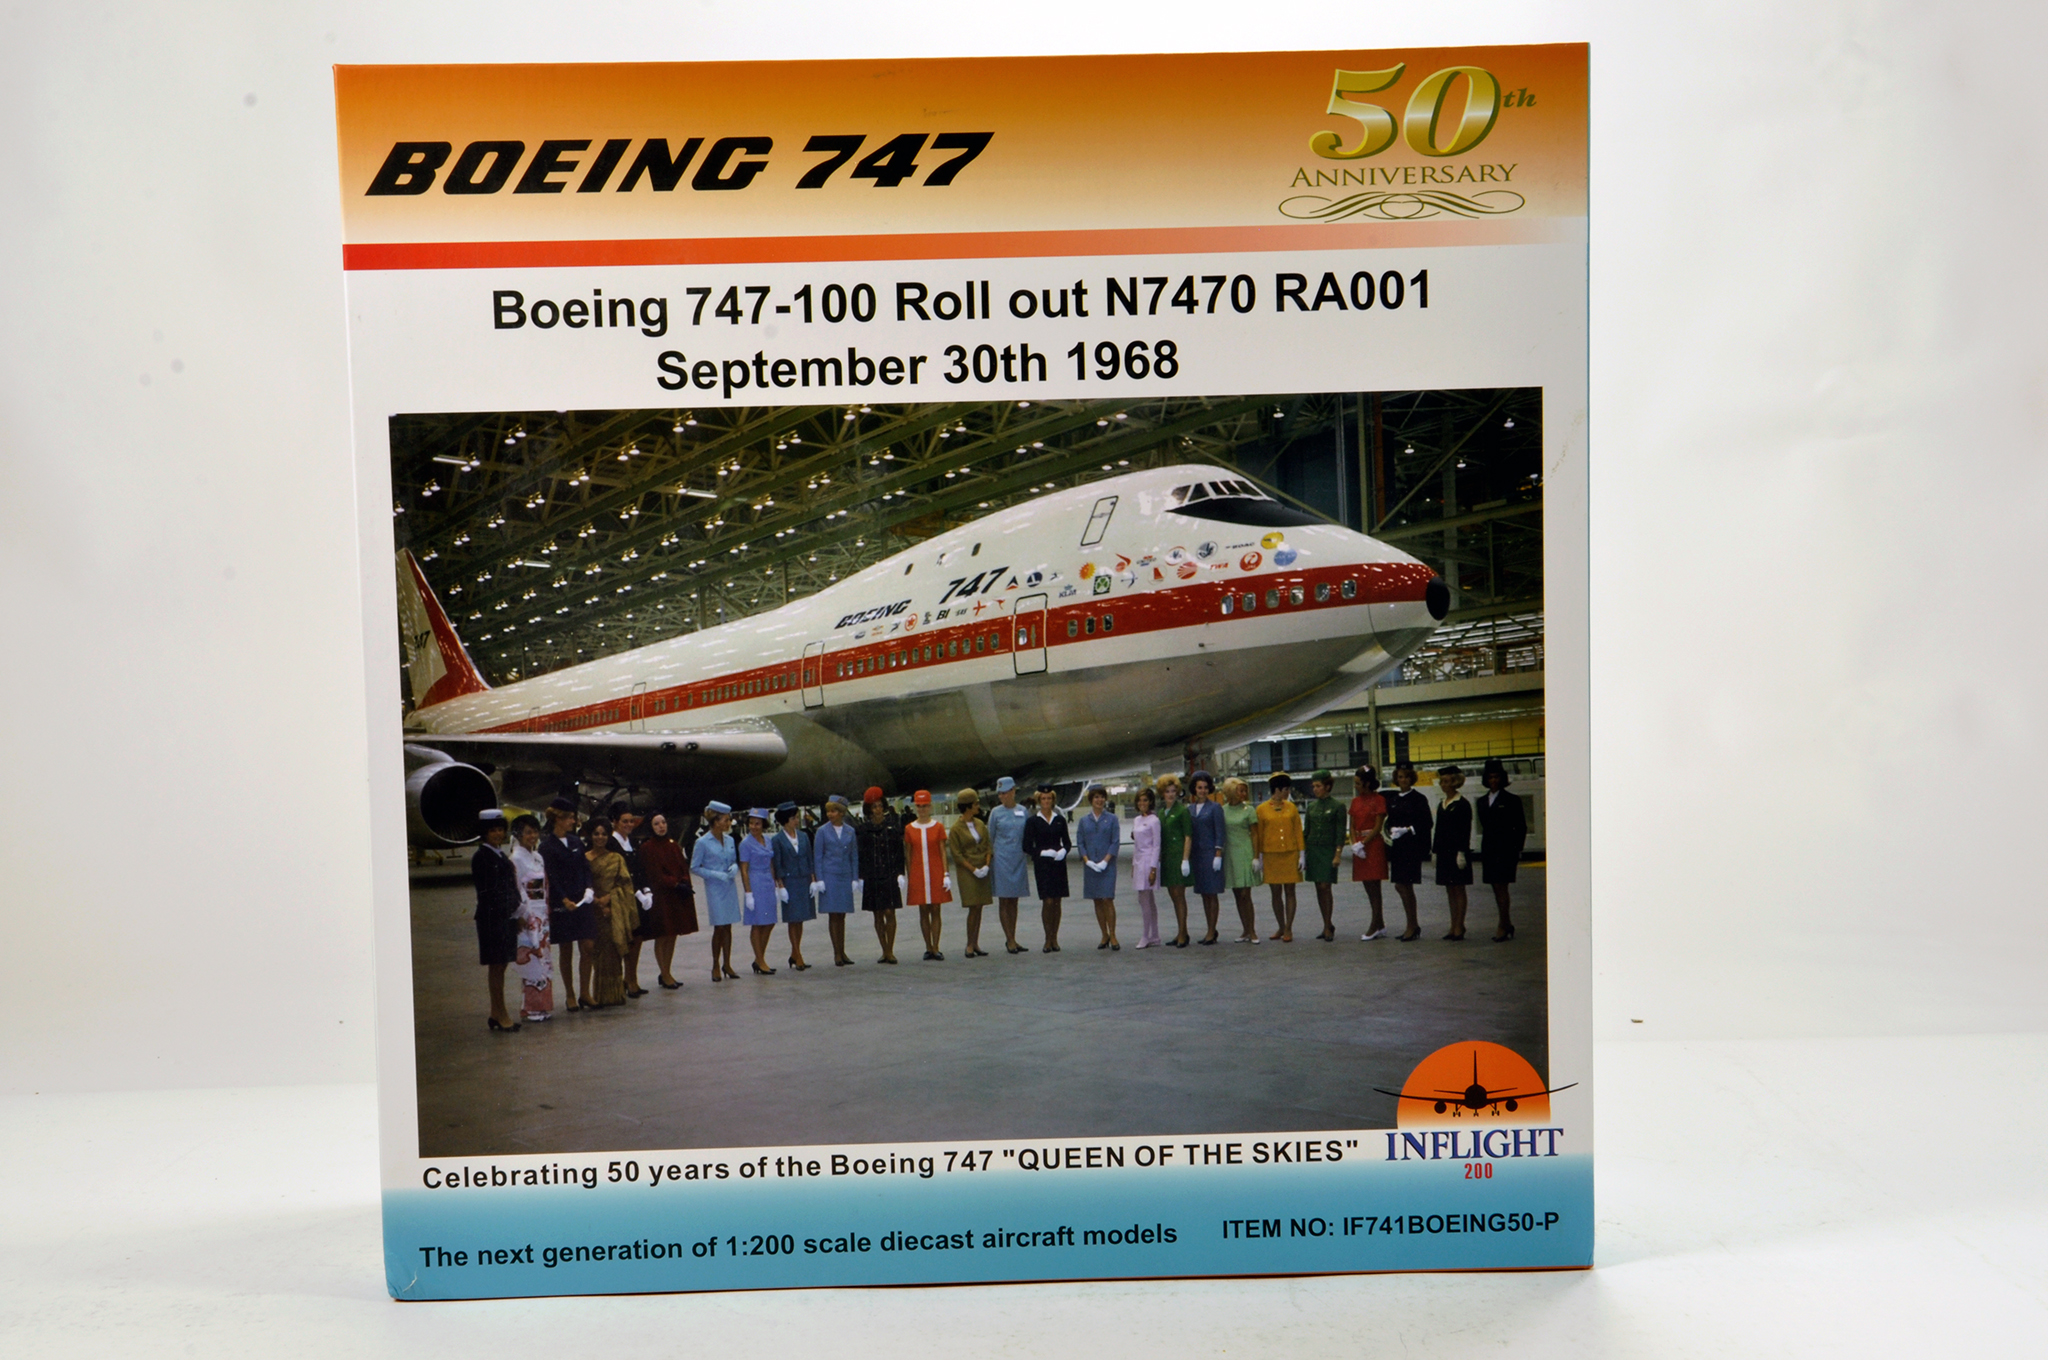 Lot 45 - Inflight Models 1/200 Diecast Aircraft Models comprising Boeing 747 Anniversary issue. Graded ex